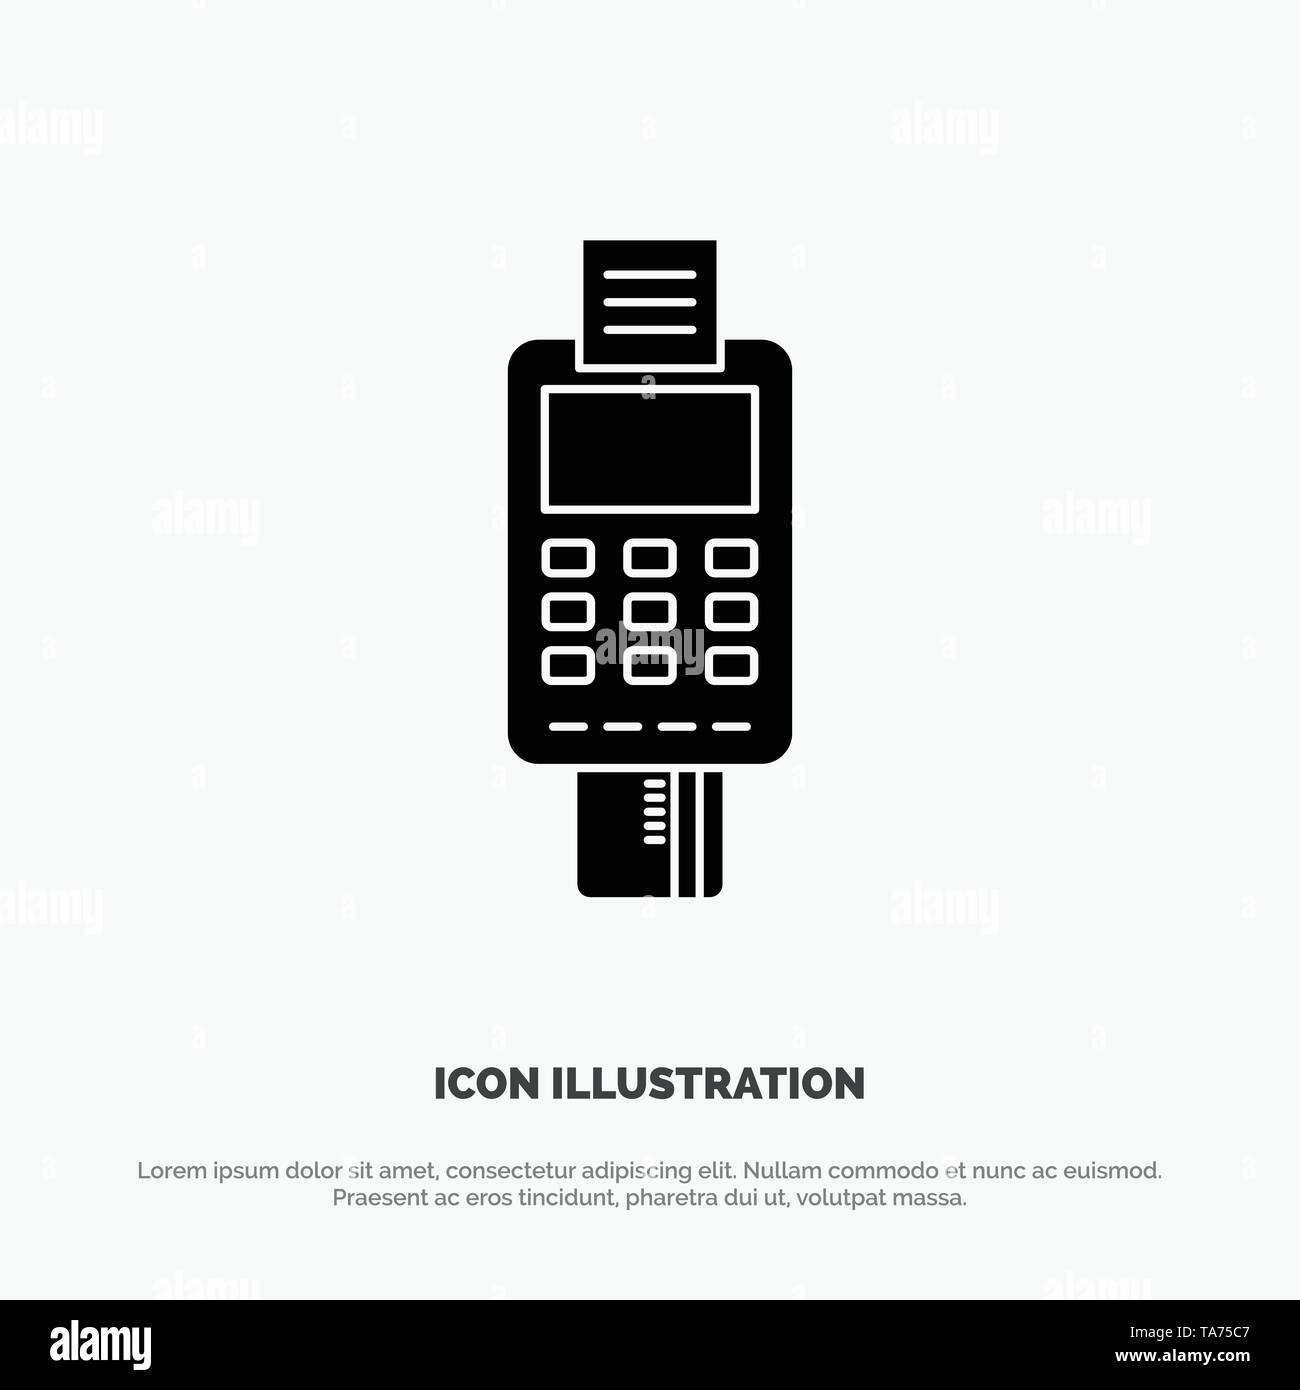 Machine, Business, Card, Check, Credit Card, Credit Card Machine, Payment, ATM solid Glyph Icon vector - Stock Image